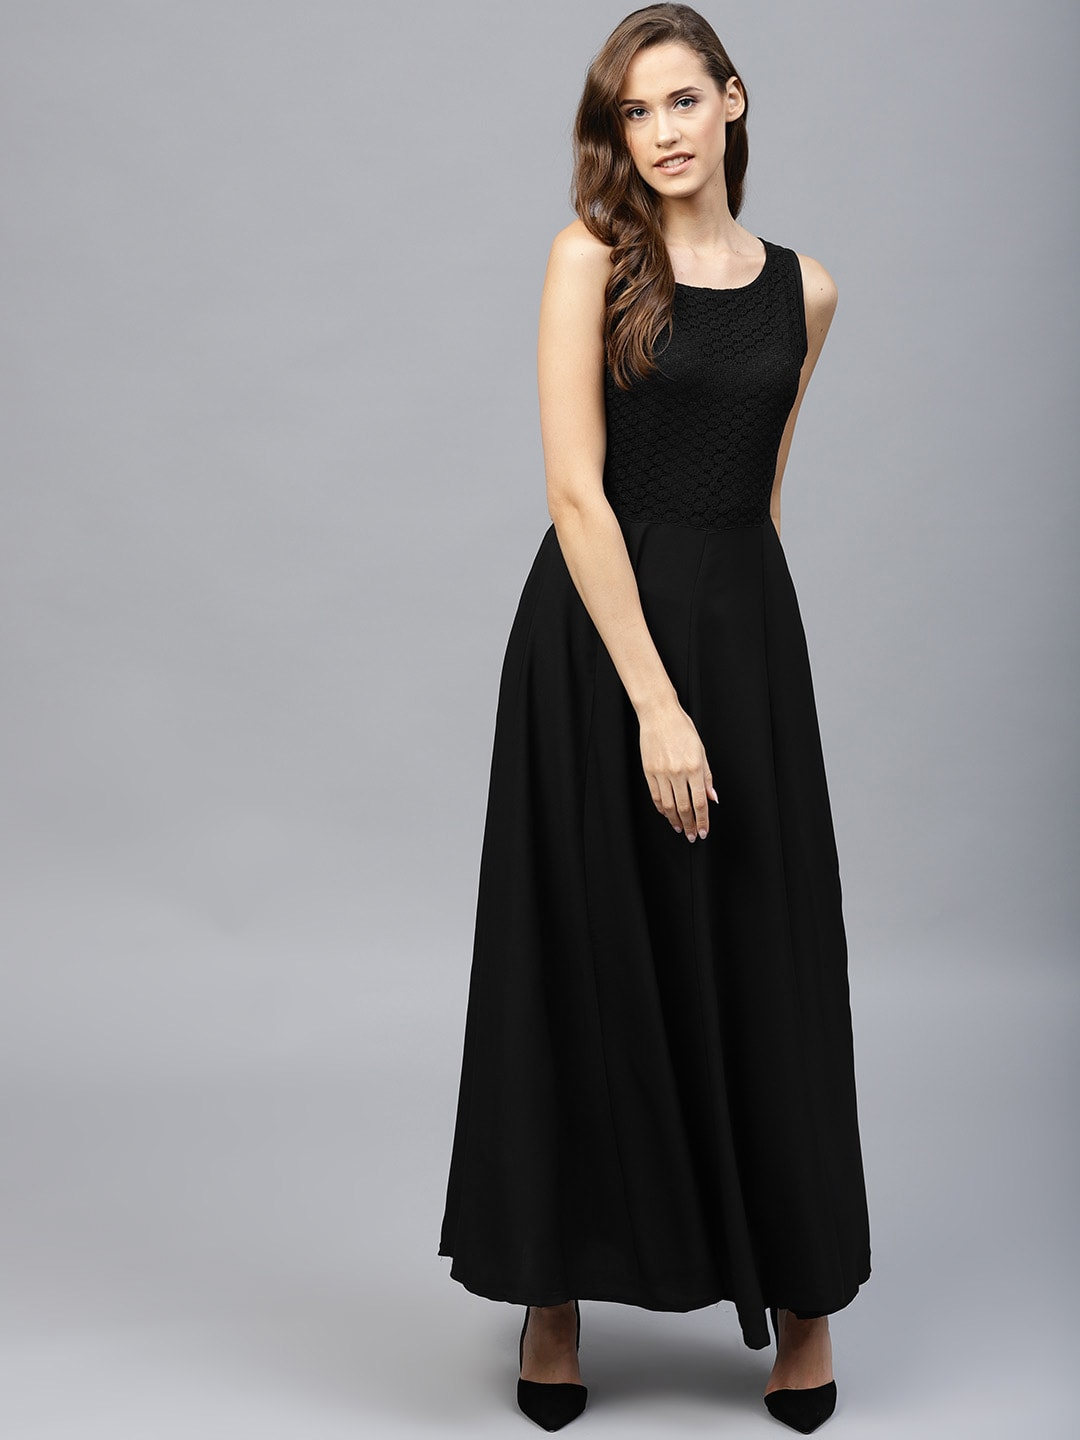 Black Dress - Buy Black Dresses For Women in India  2f165f6cf